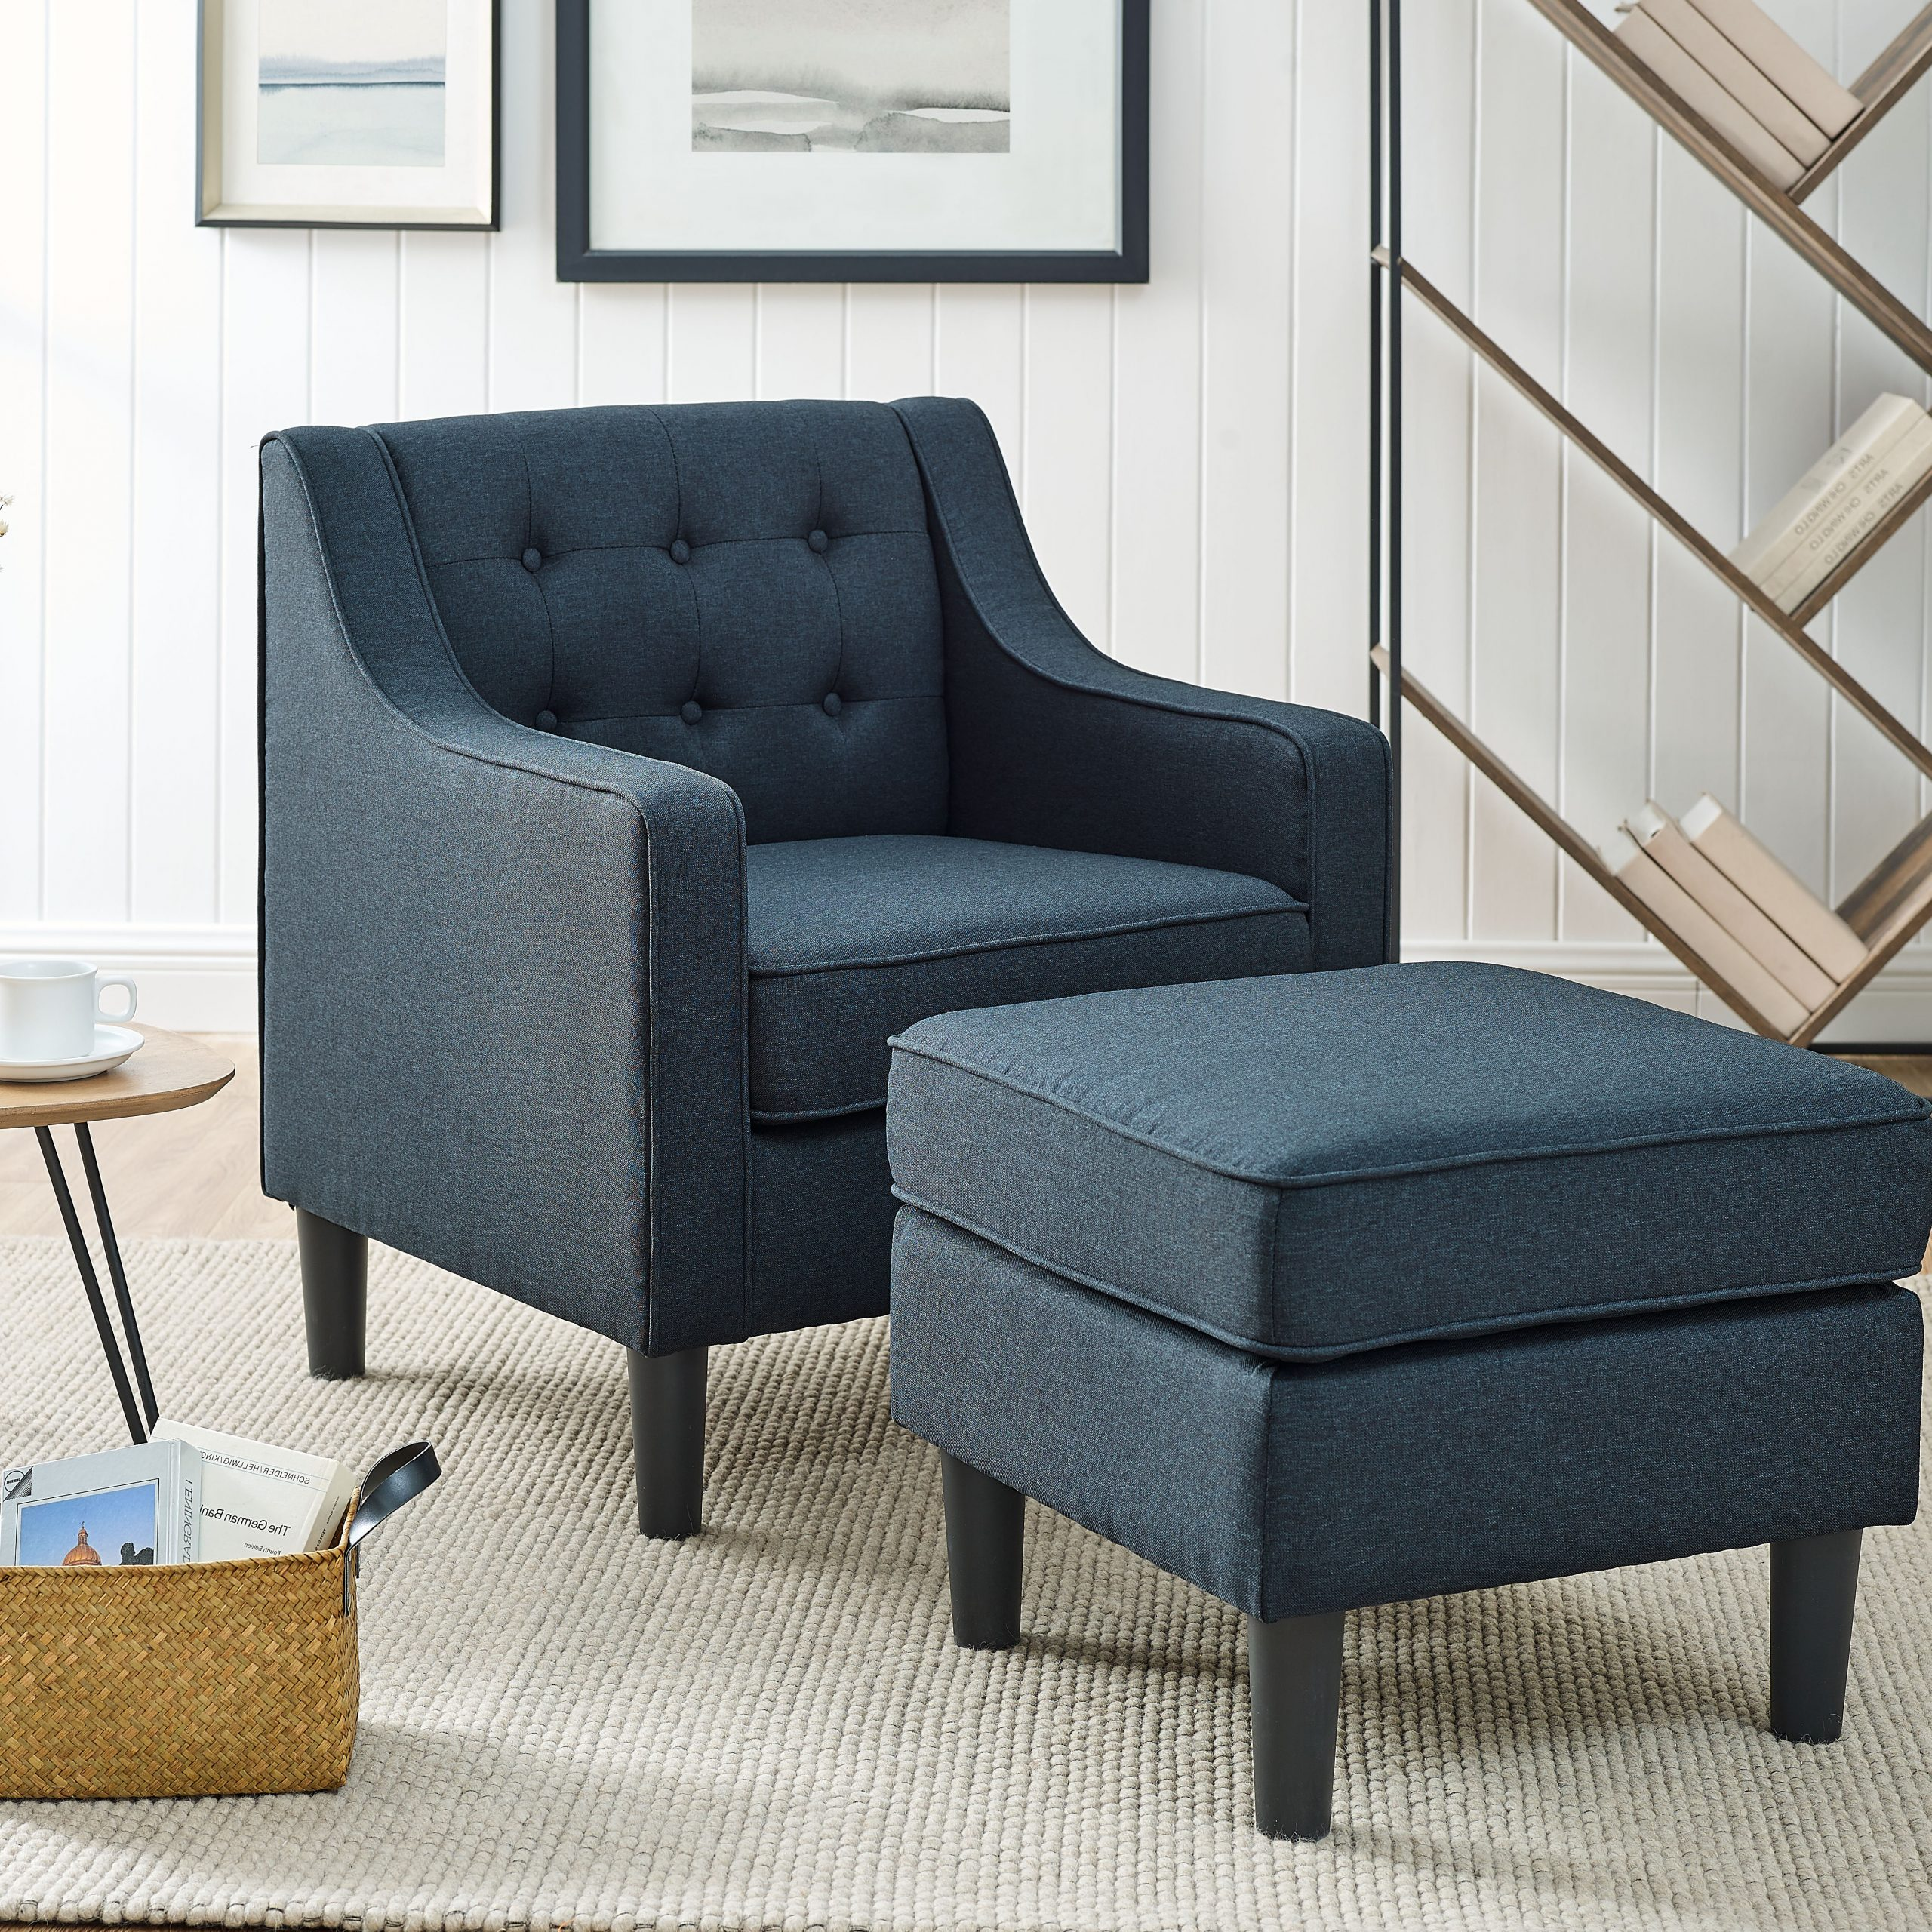 Preferred Hallsville Performance Velvet Armchairs And Ottoman In Navy Ottoman Included Accent Chairs You'll Love In  (View 4 of 20)